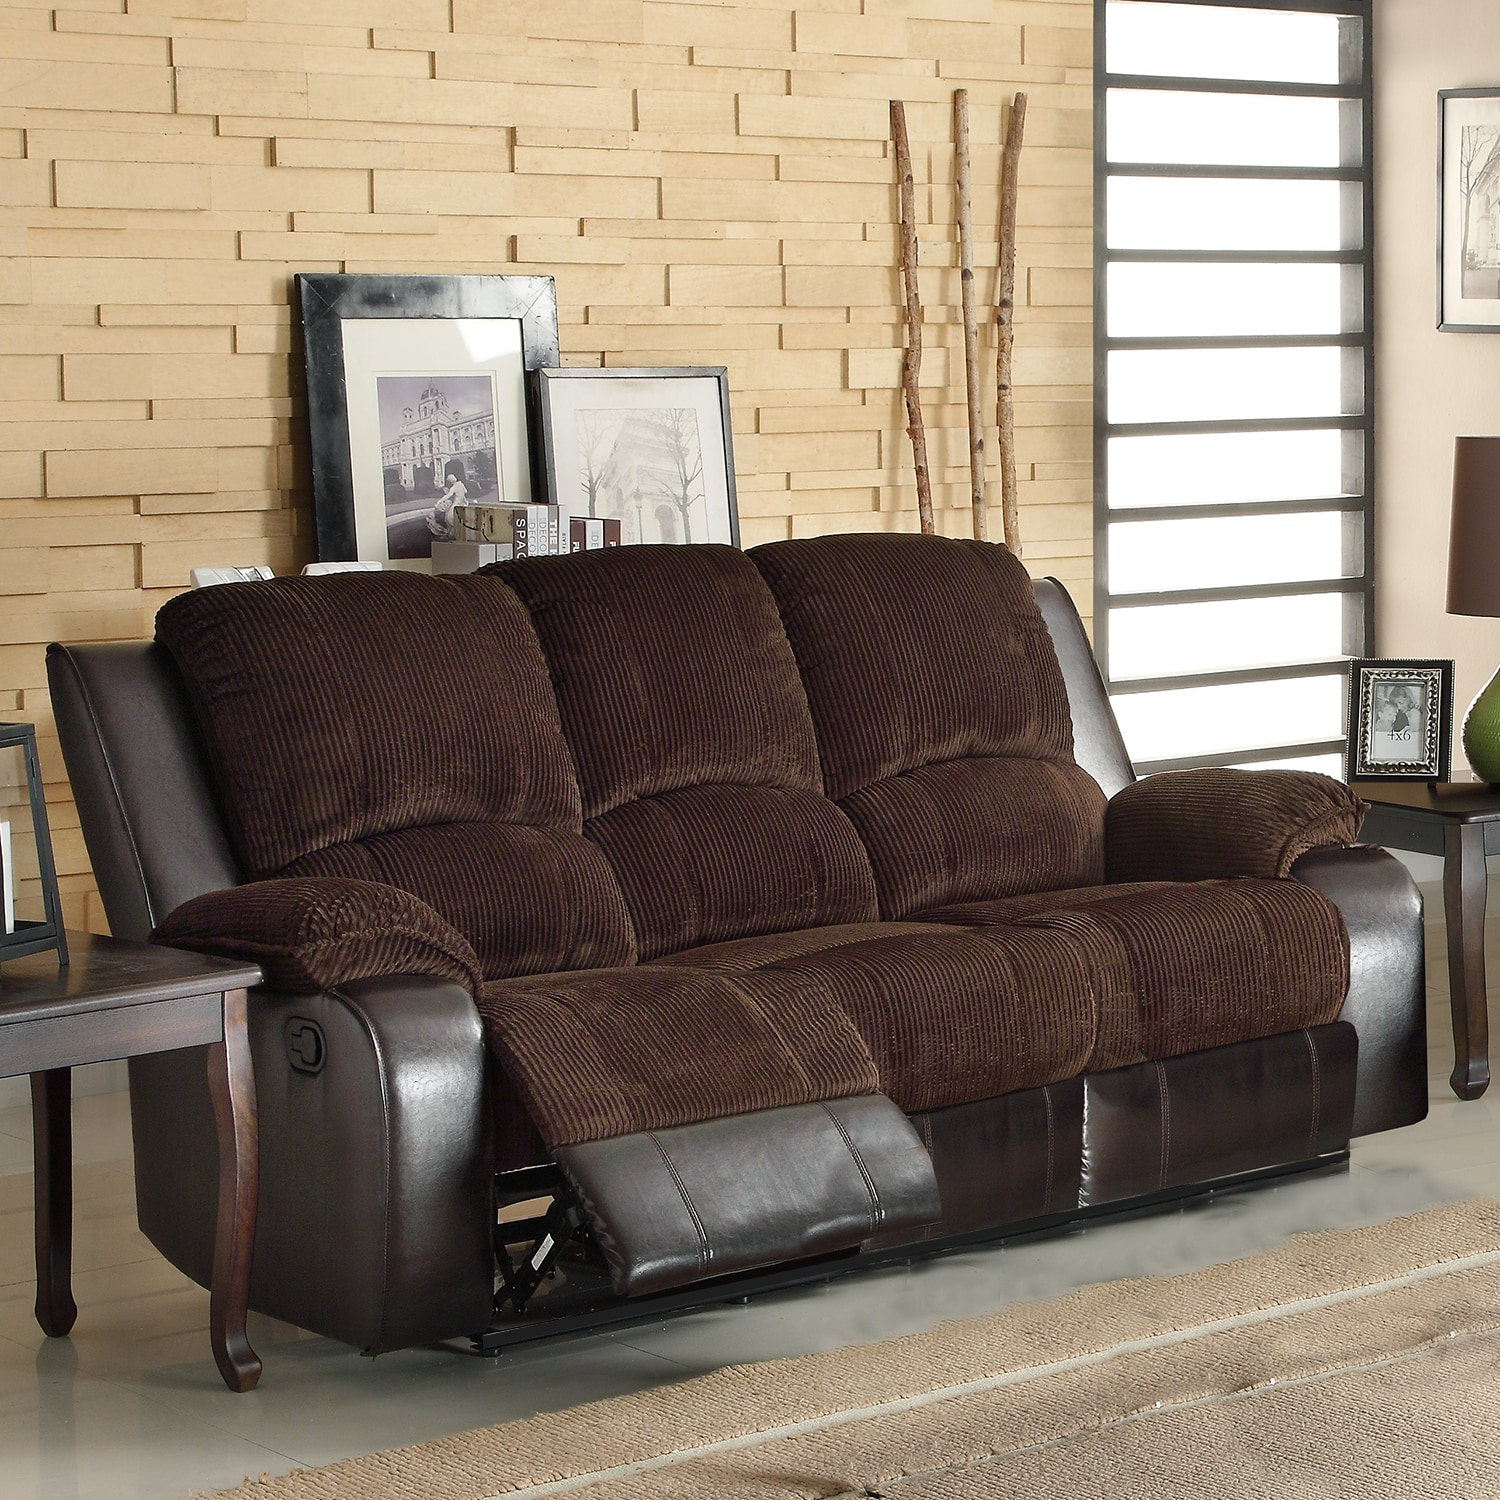 AT HOME by O Arbor Corduroy Double Recliner Sofa at Sears.com